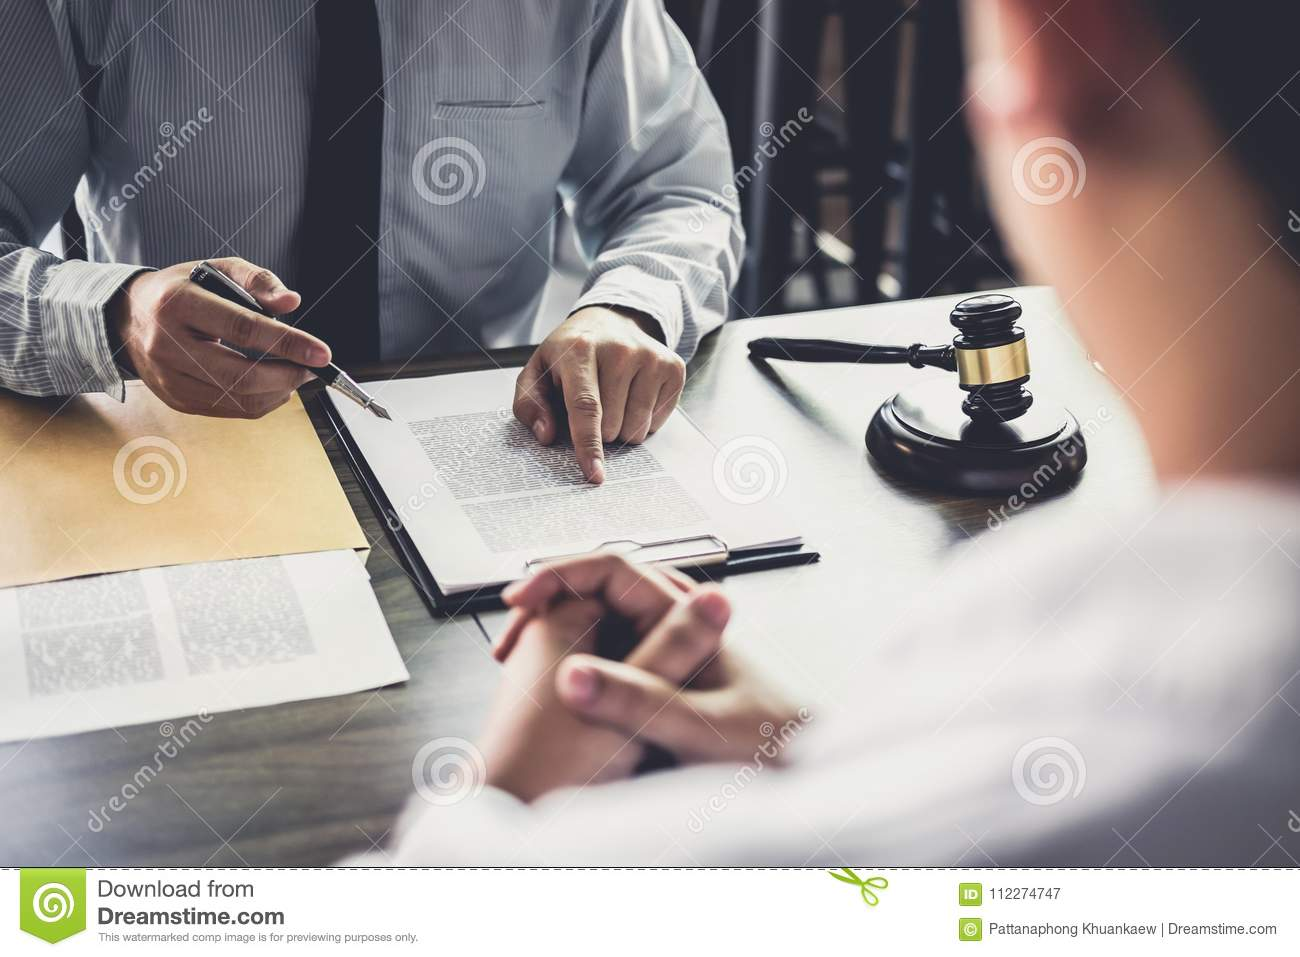 Businessman and Male lawyer or judge consult having team meeting